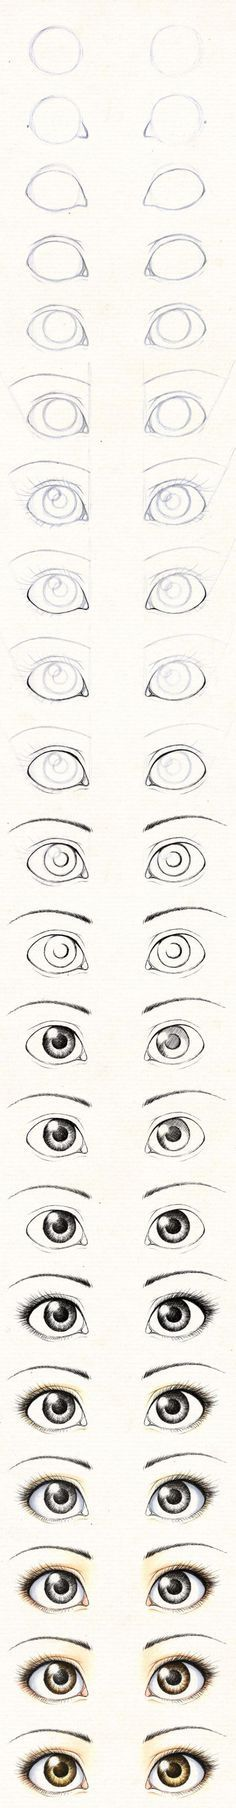 How to draw doll eyes / Рисуем глаза текстильной кукле. - Ярмарка Мастеров - ручная работа, handmade